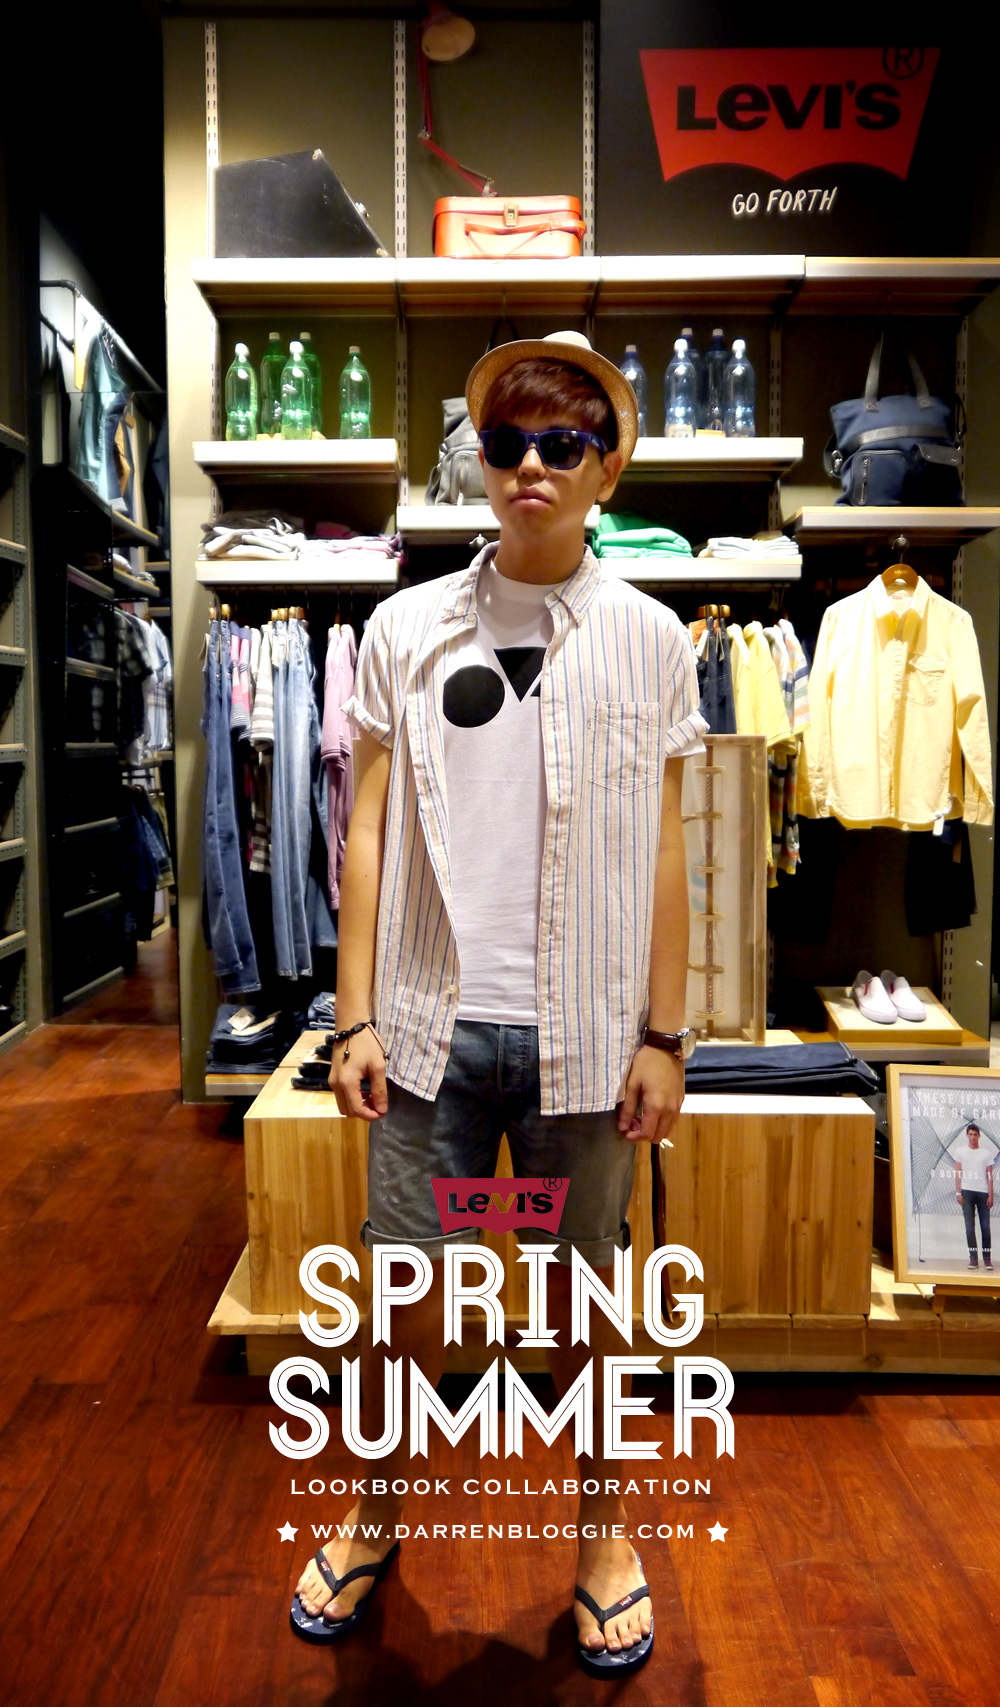 Darren Bloggie X LEVI'S Spring/Summer Lookbook Collaboration